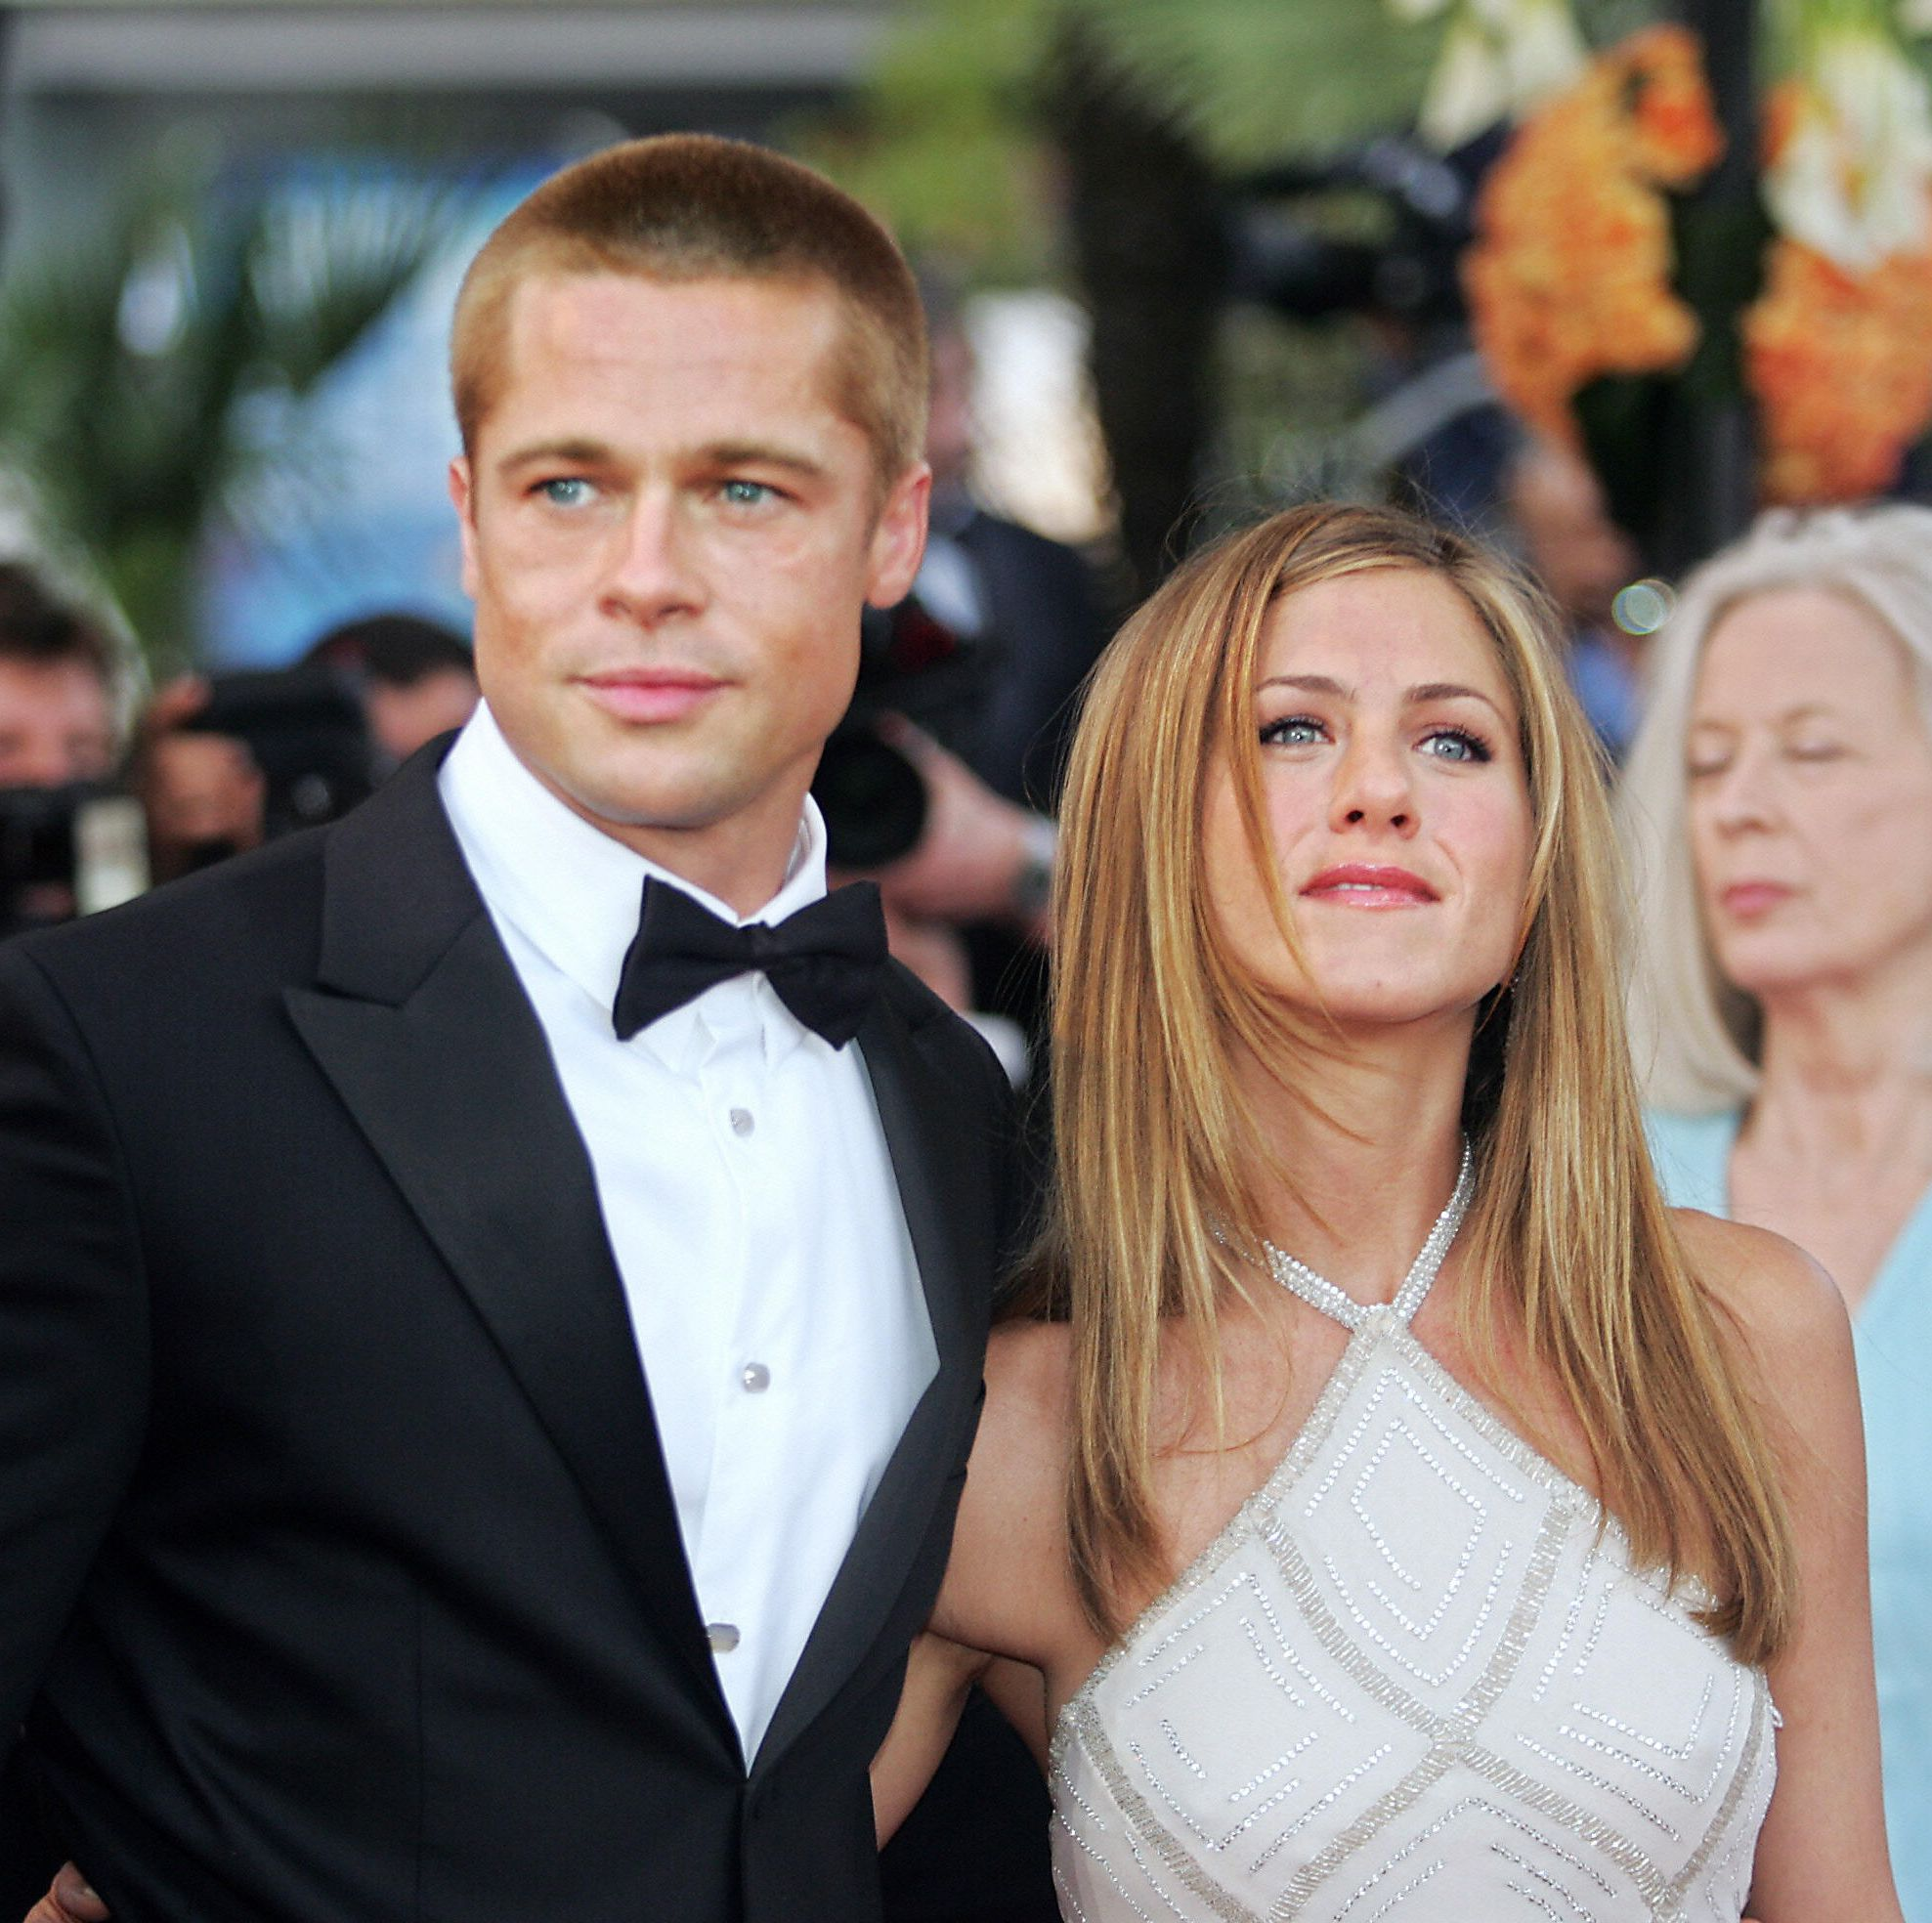 Brad Pitt Reportedly Regrets How He Handled His and Jennifer Aniston's Divorce